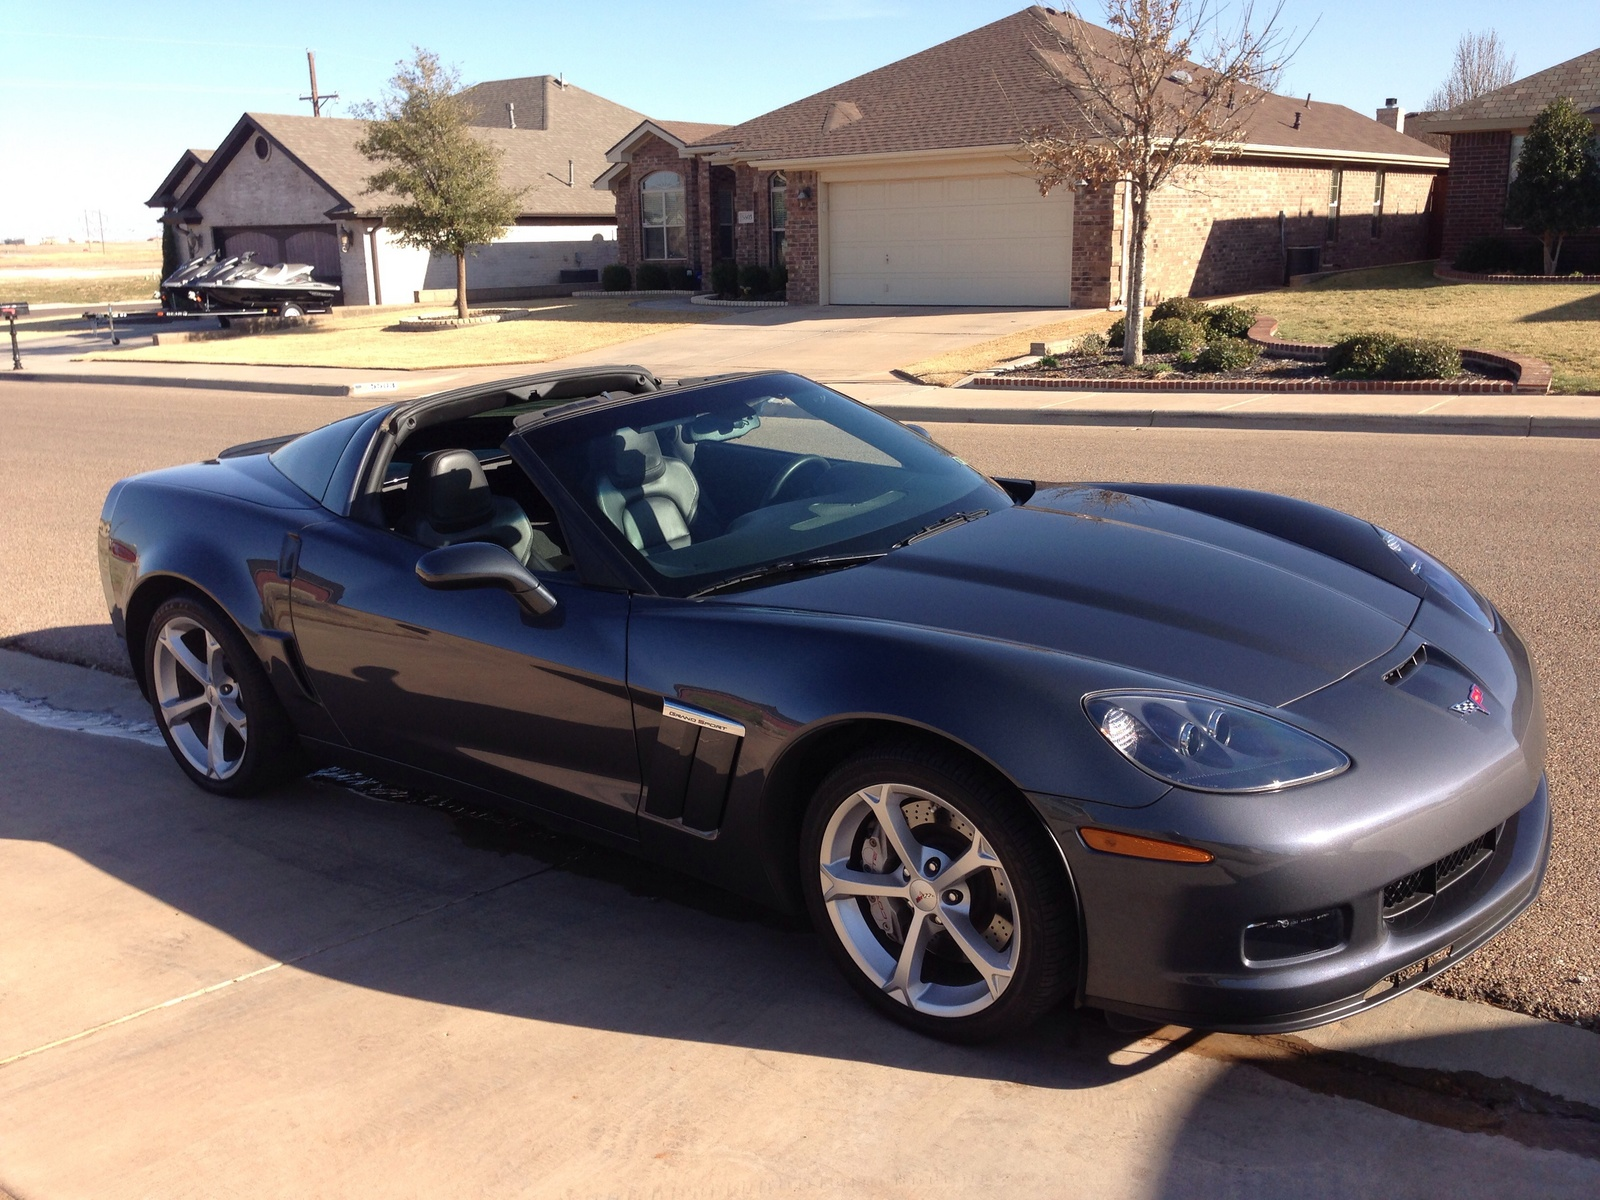 Picture of 2012 Chevrolet Corvette Grand Sport 2LT, exterior